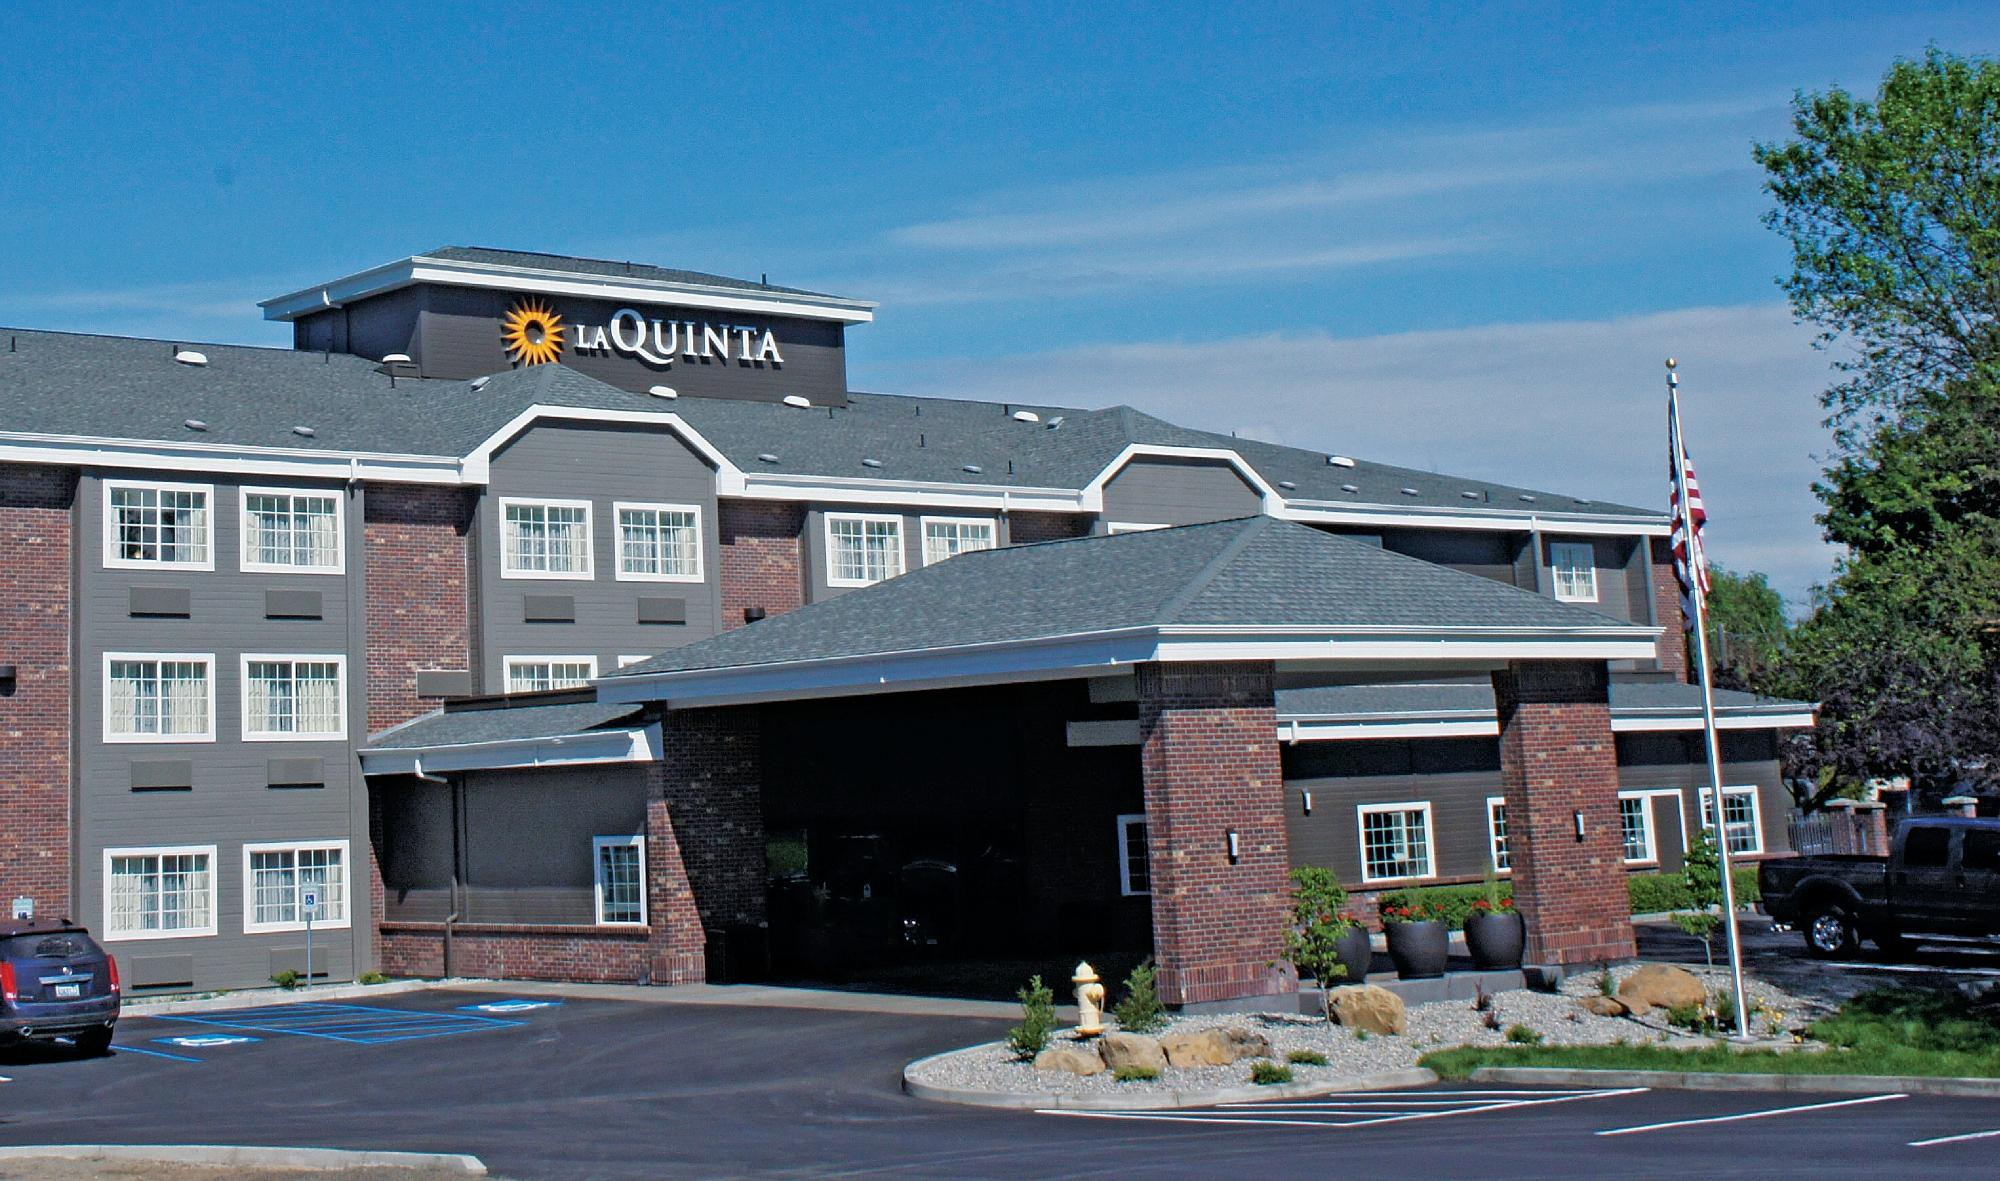 La Quinta Inn & Suites Spokane North